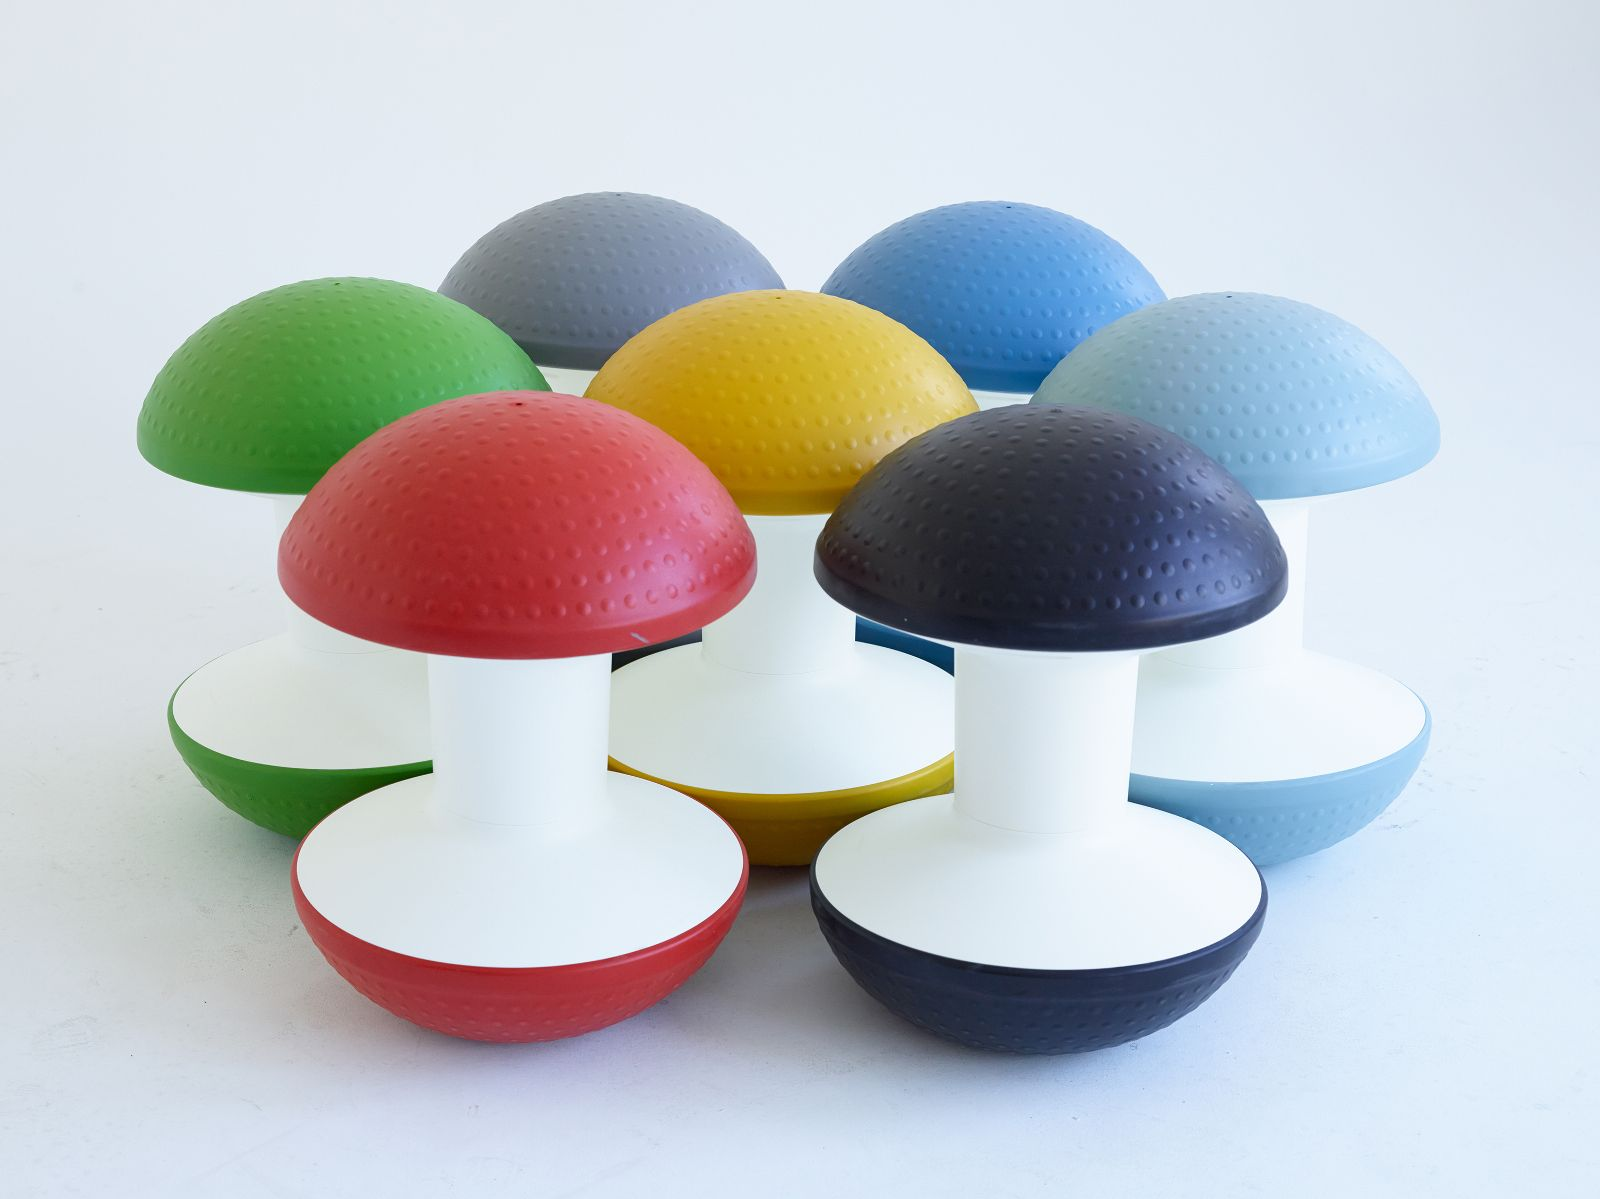 ergonomic chair exercise ball original yankee stadium chairs ballo stool active sitting innovative humanscale res